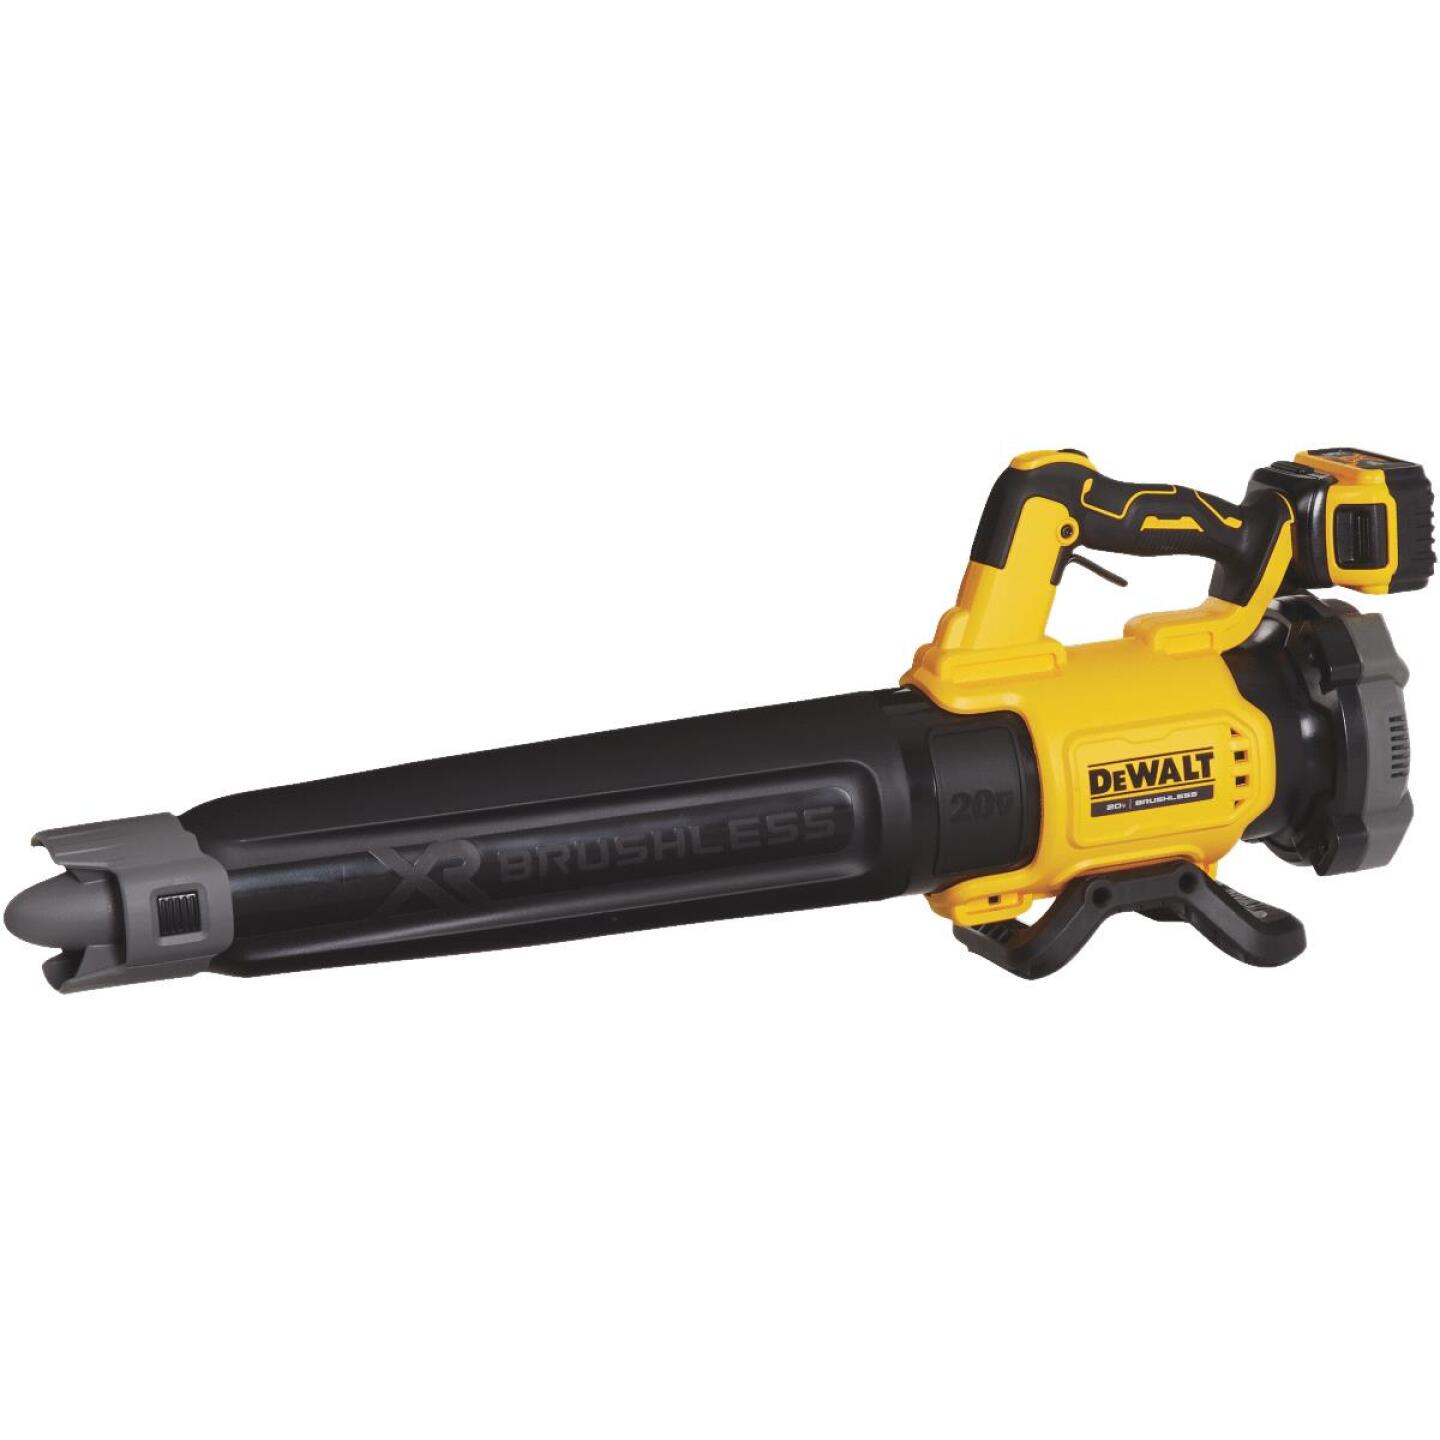 DeWalT 20V MAX XR Brushless Handheld Blower Image 1